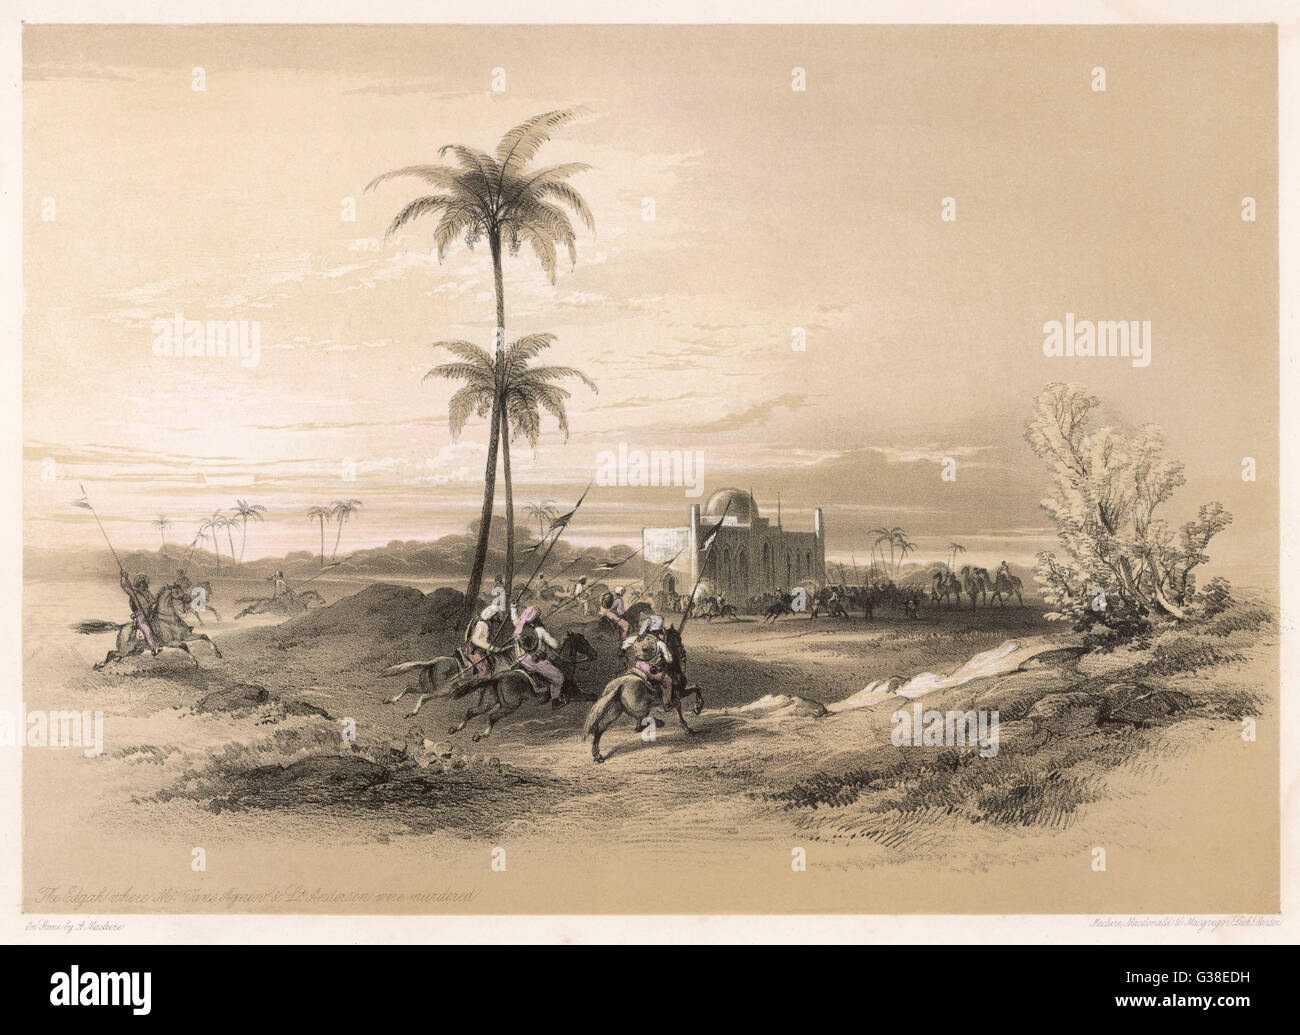 Multan (Mooltan) -  the scene of the murder of  Vans Agnew and Lt. Anderson (the Eedgah)      Date: 1848 - Stock Image